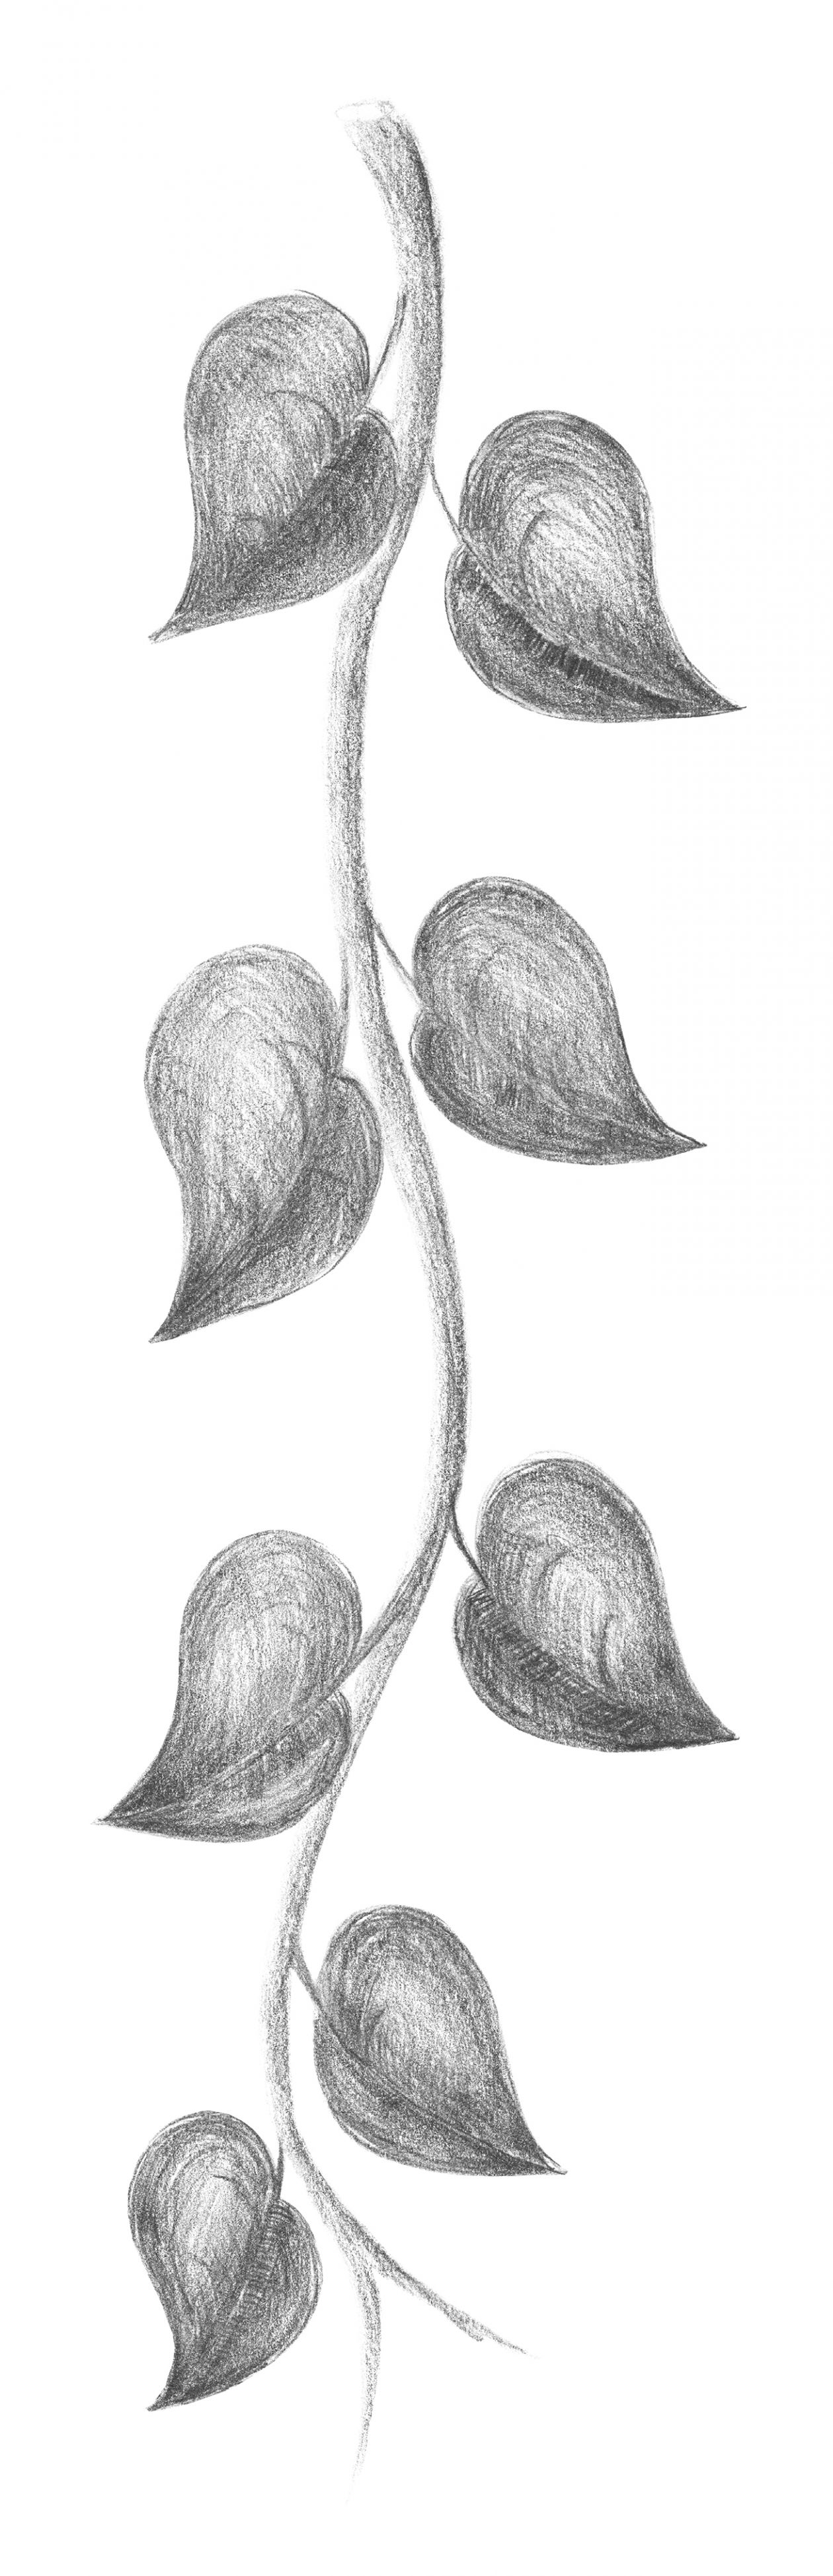 """Free photo """"Branch. Pencil sketch. Freehand drawing."""""""